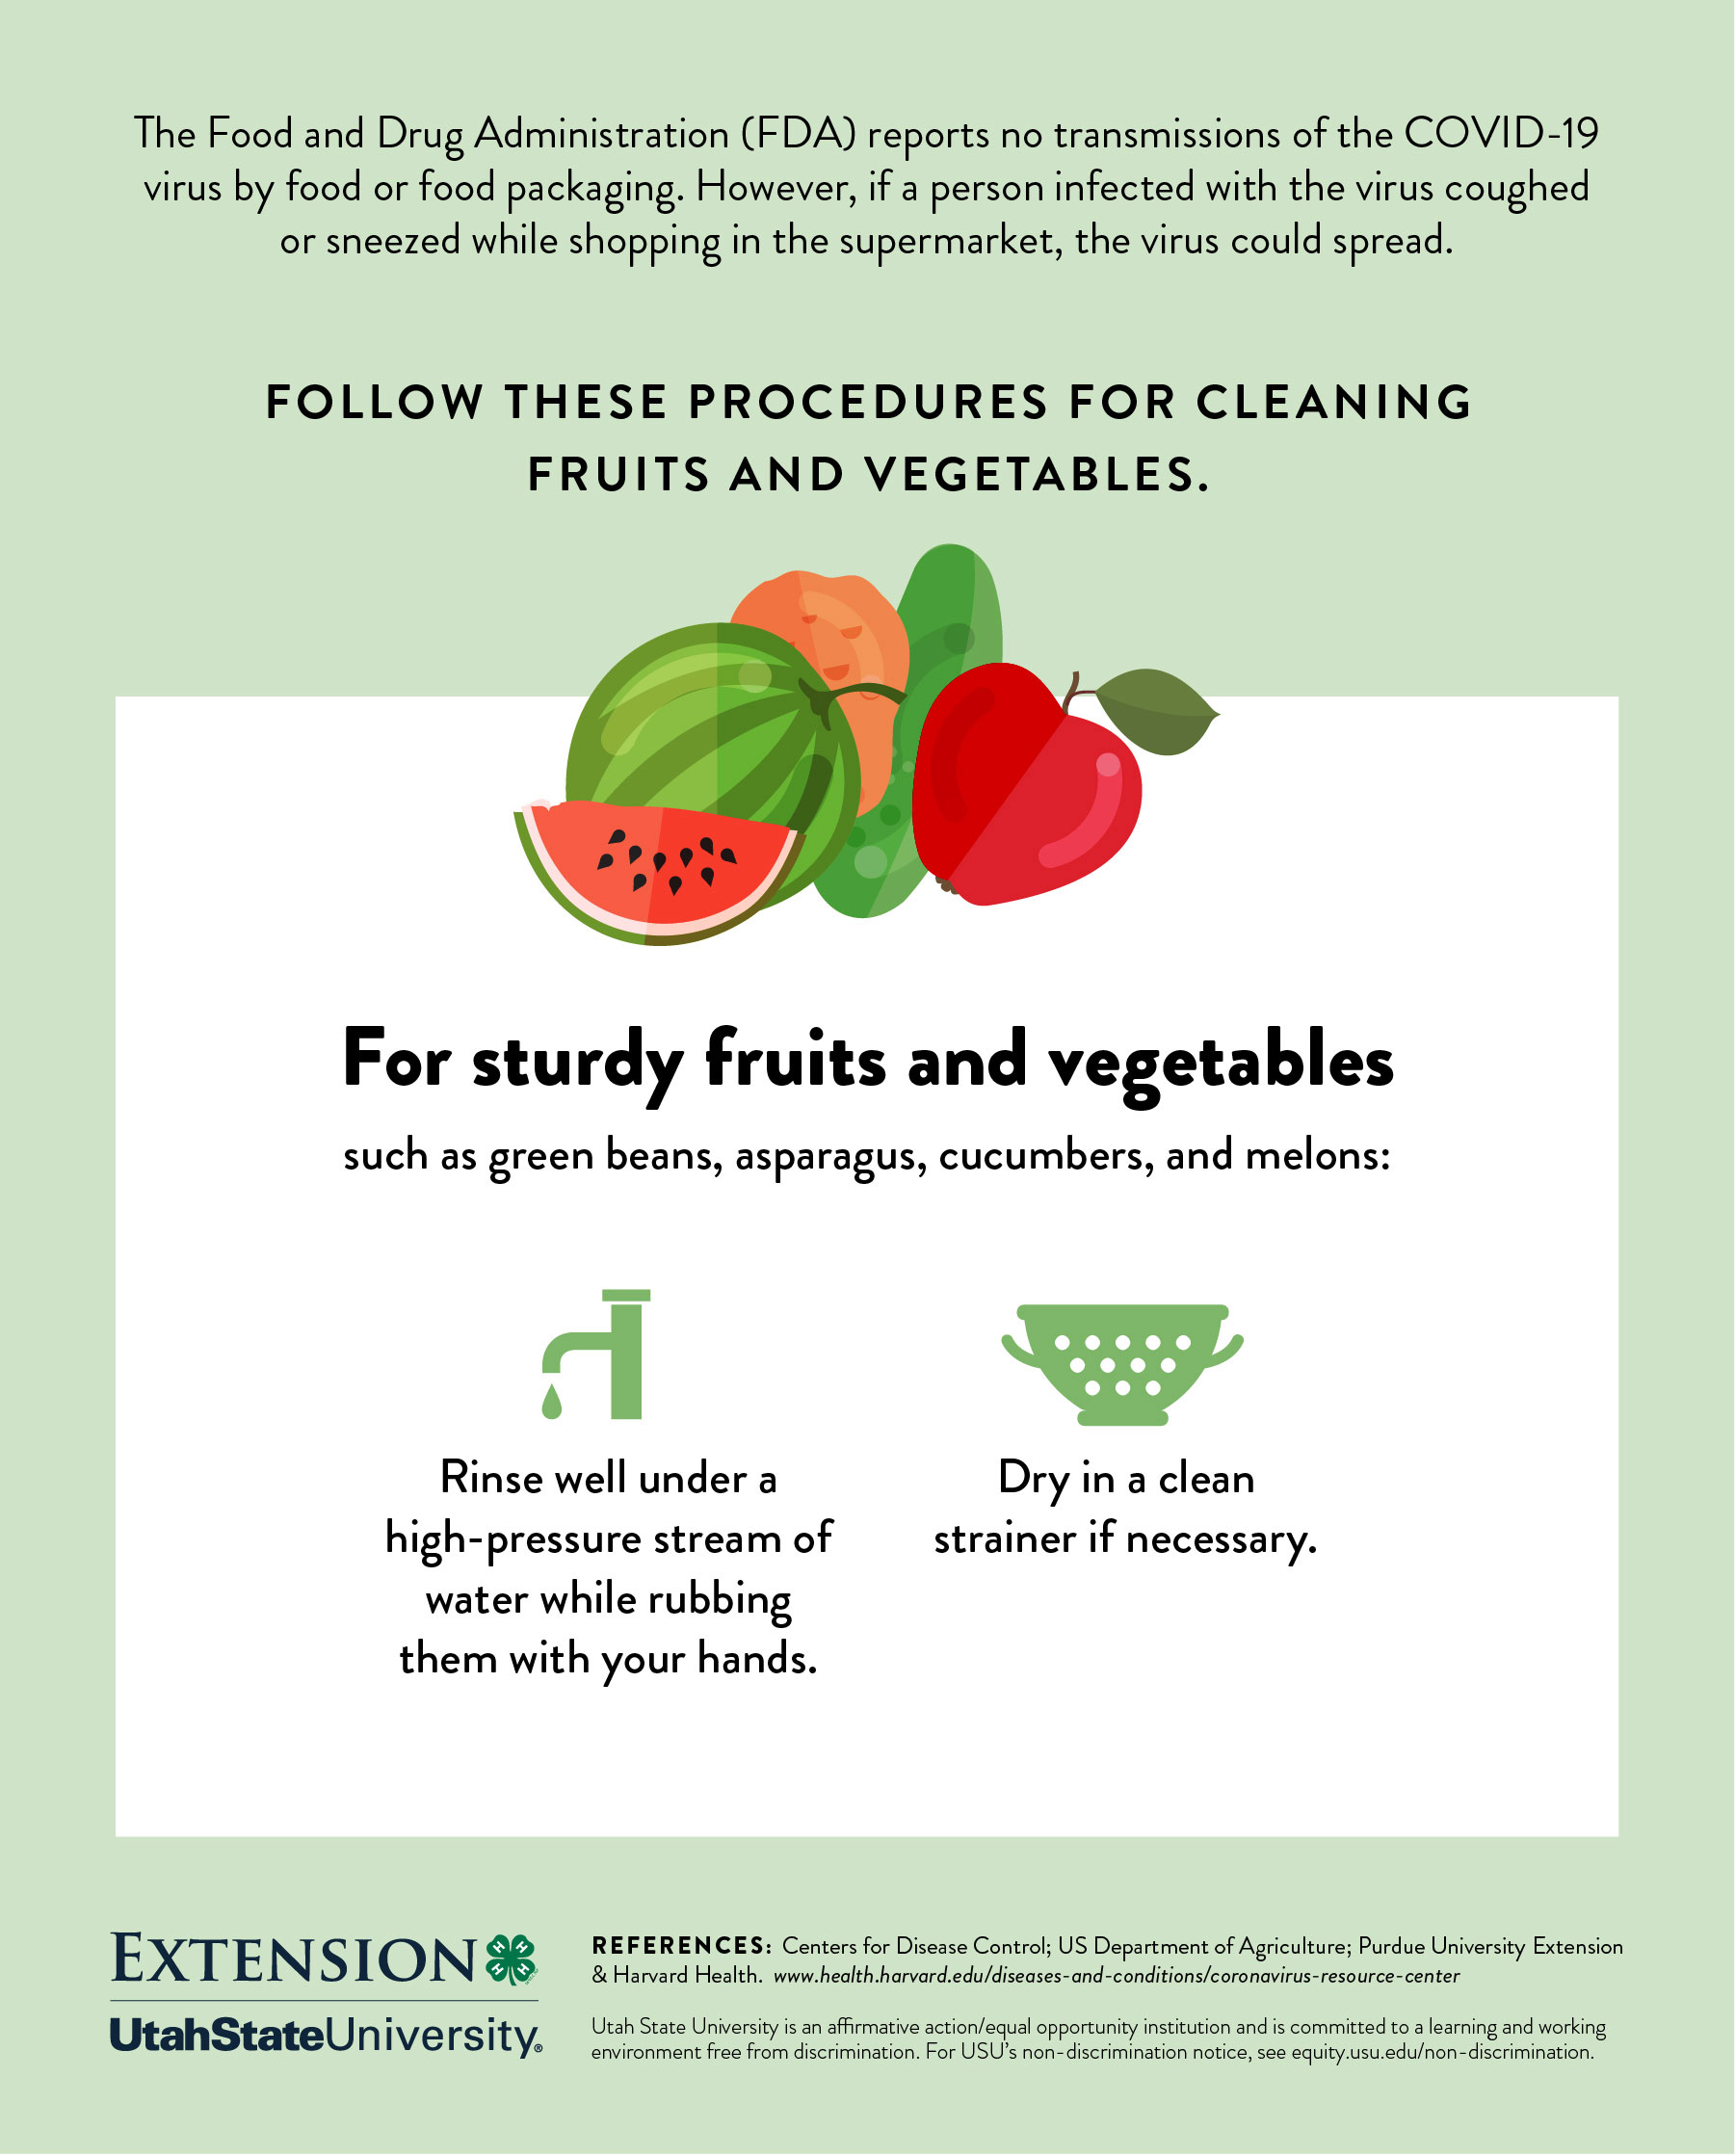 Cleaning sturdy fruits and veggies